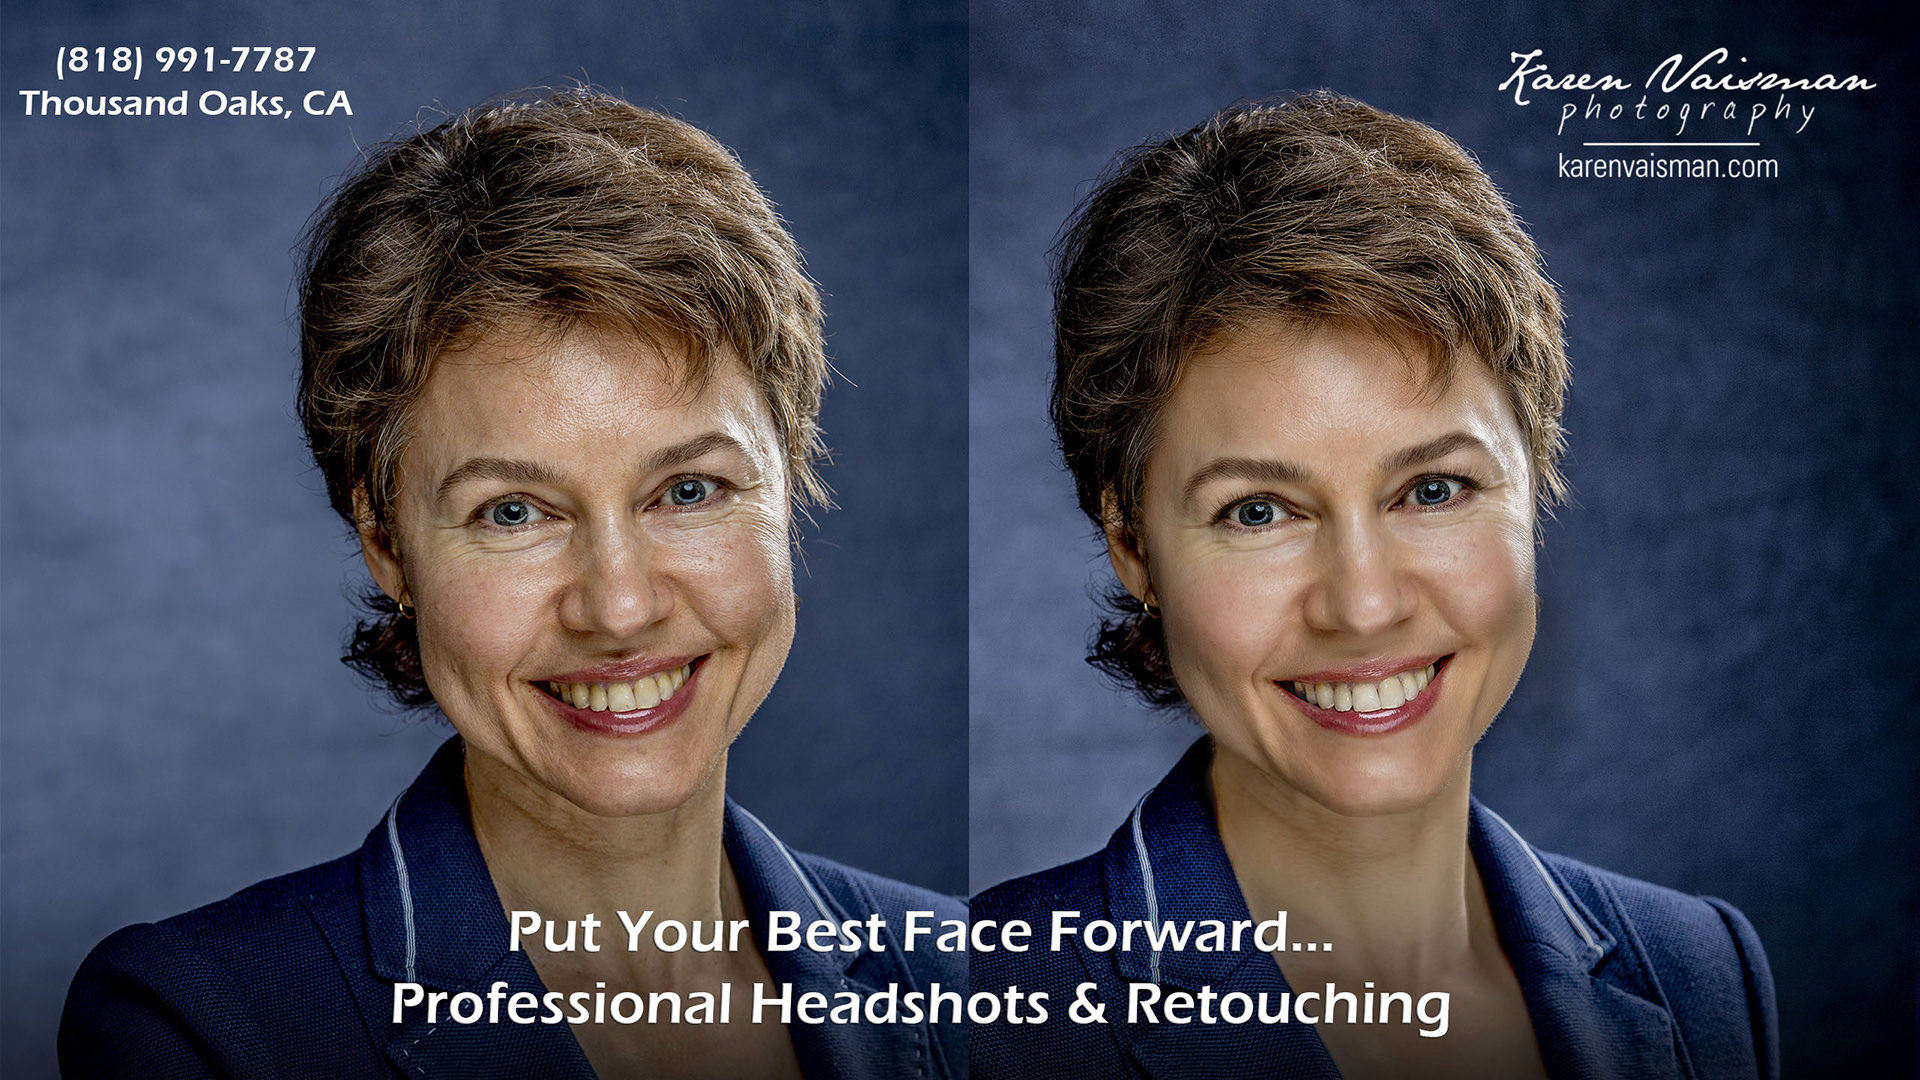 Professionally Retouched Corporate Headshot